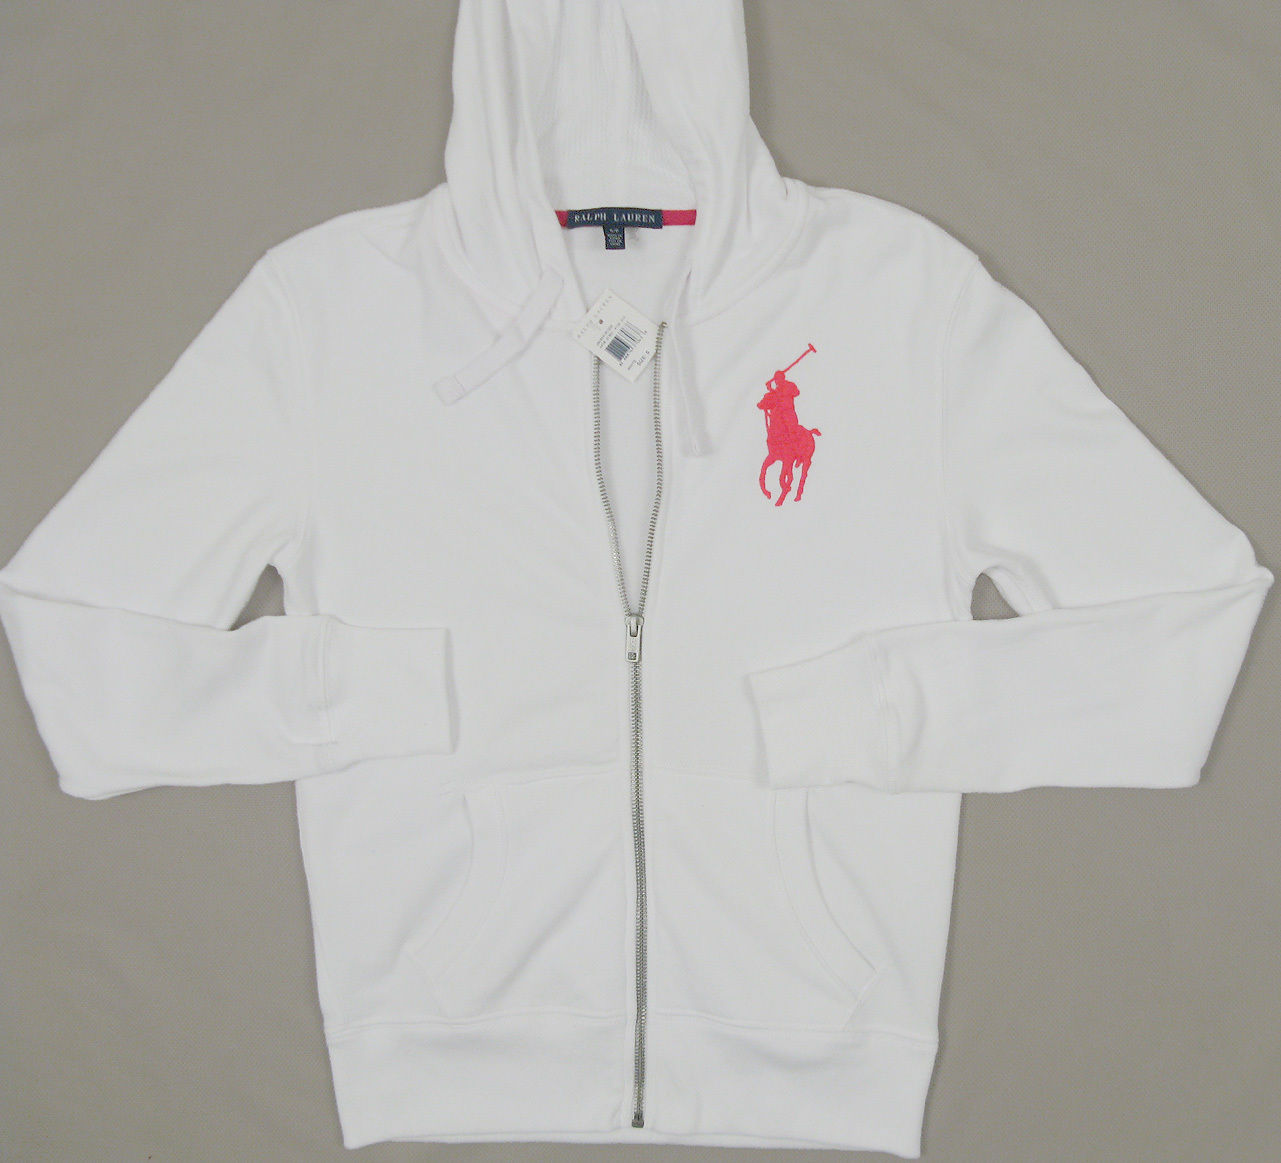 Lauren Hoodie Items And Big 165 Pony Ralph Polo 50 Similar New E9IWYDH2